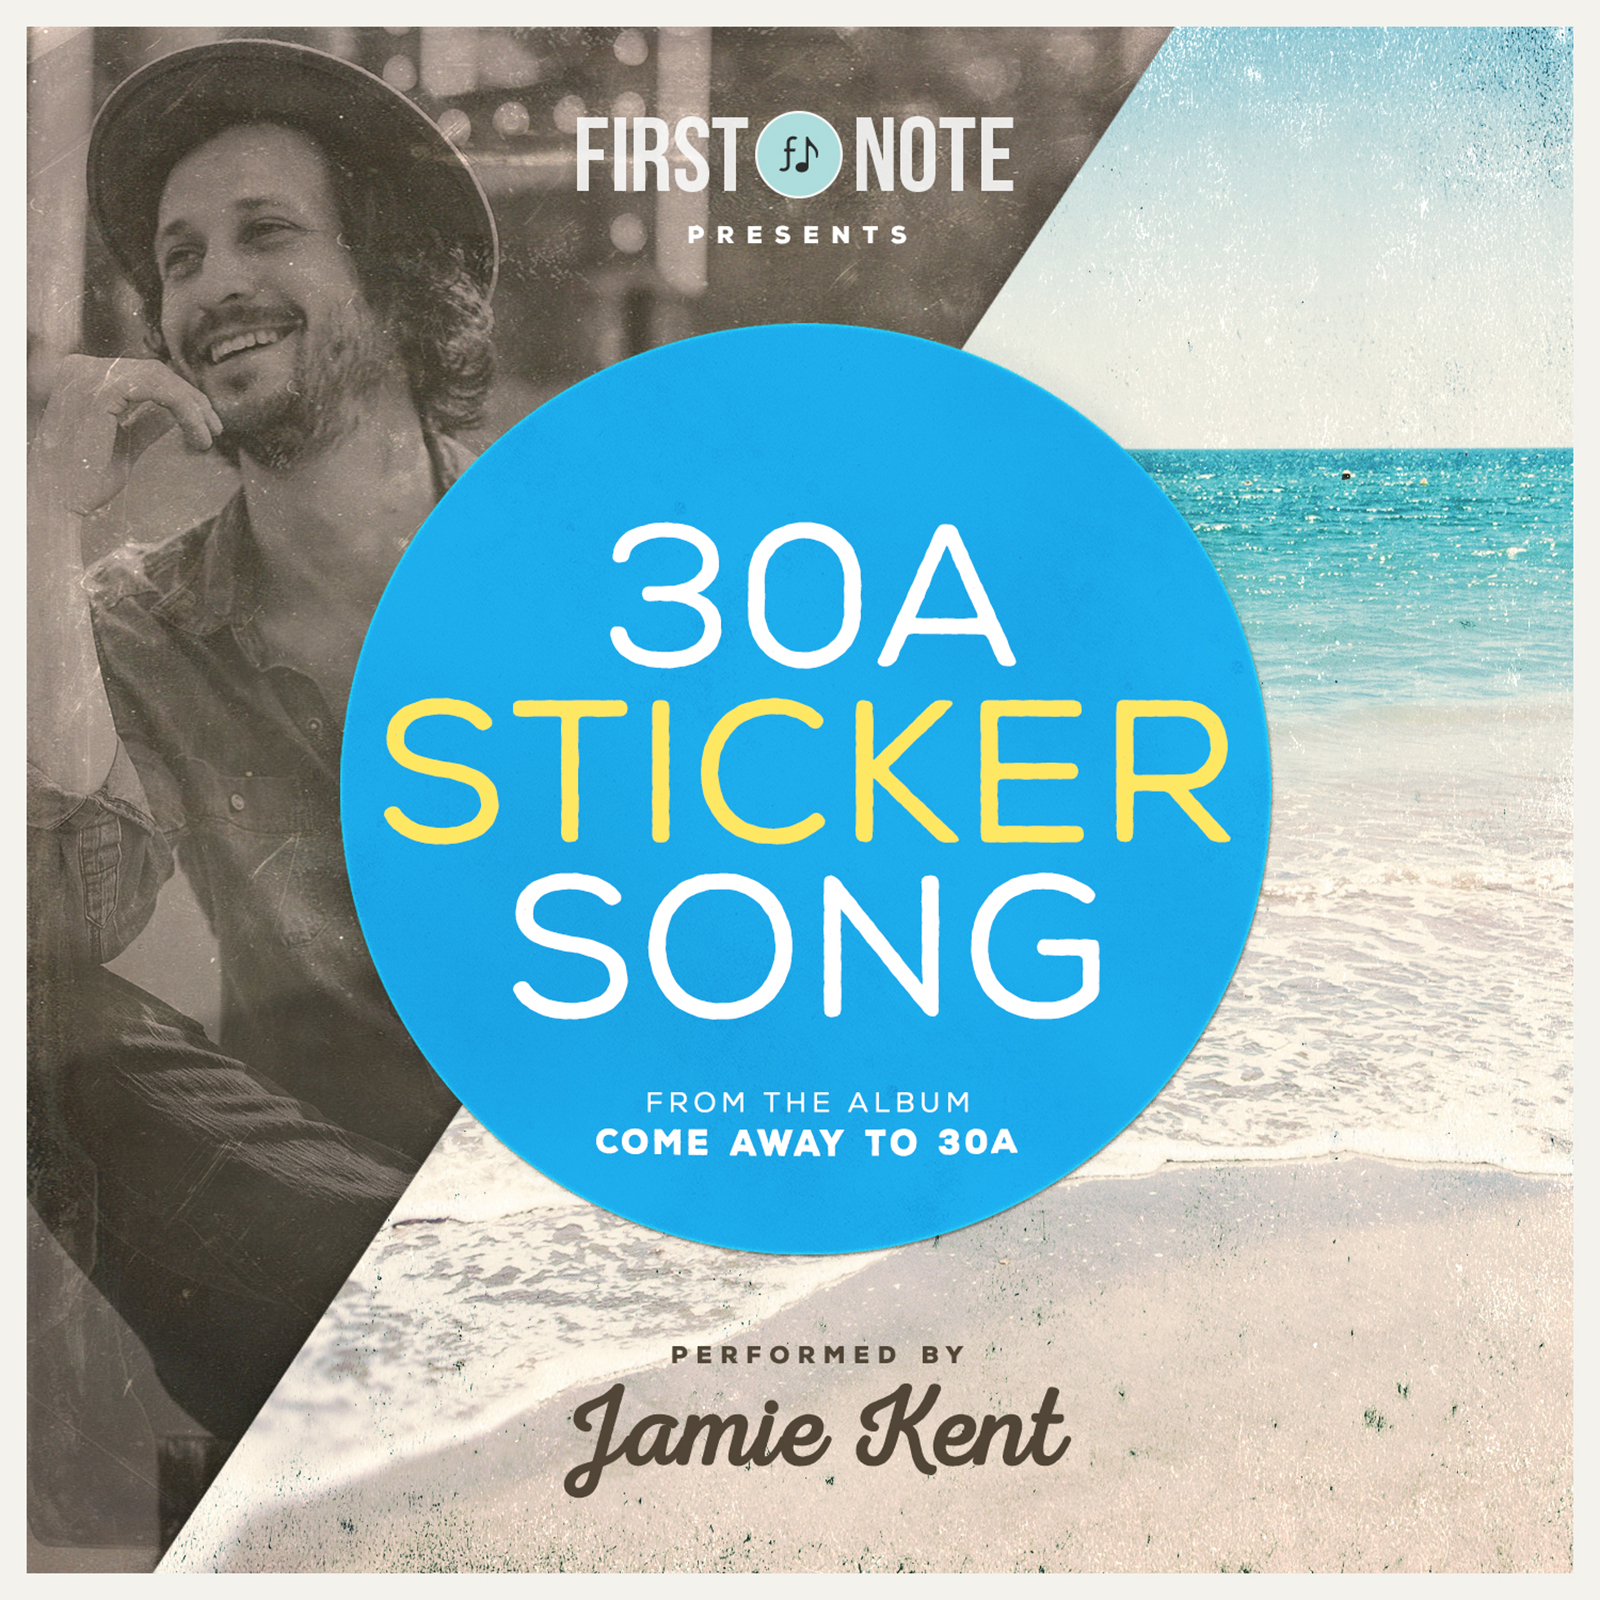 Jamie Kent - 30 A Sticker Song